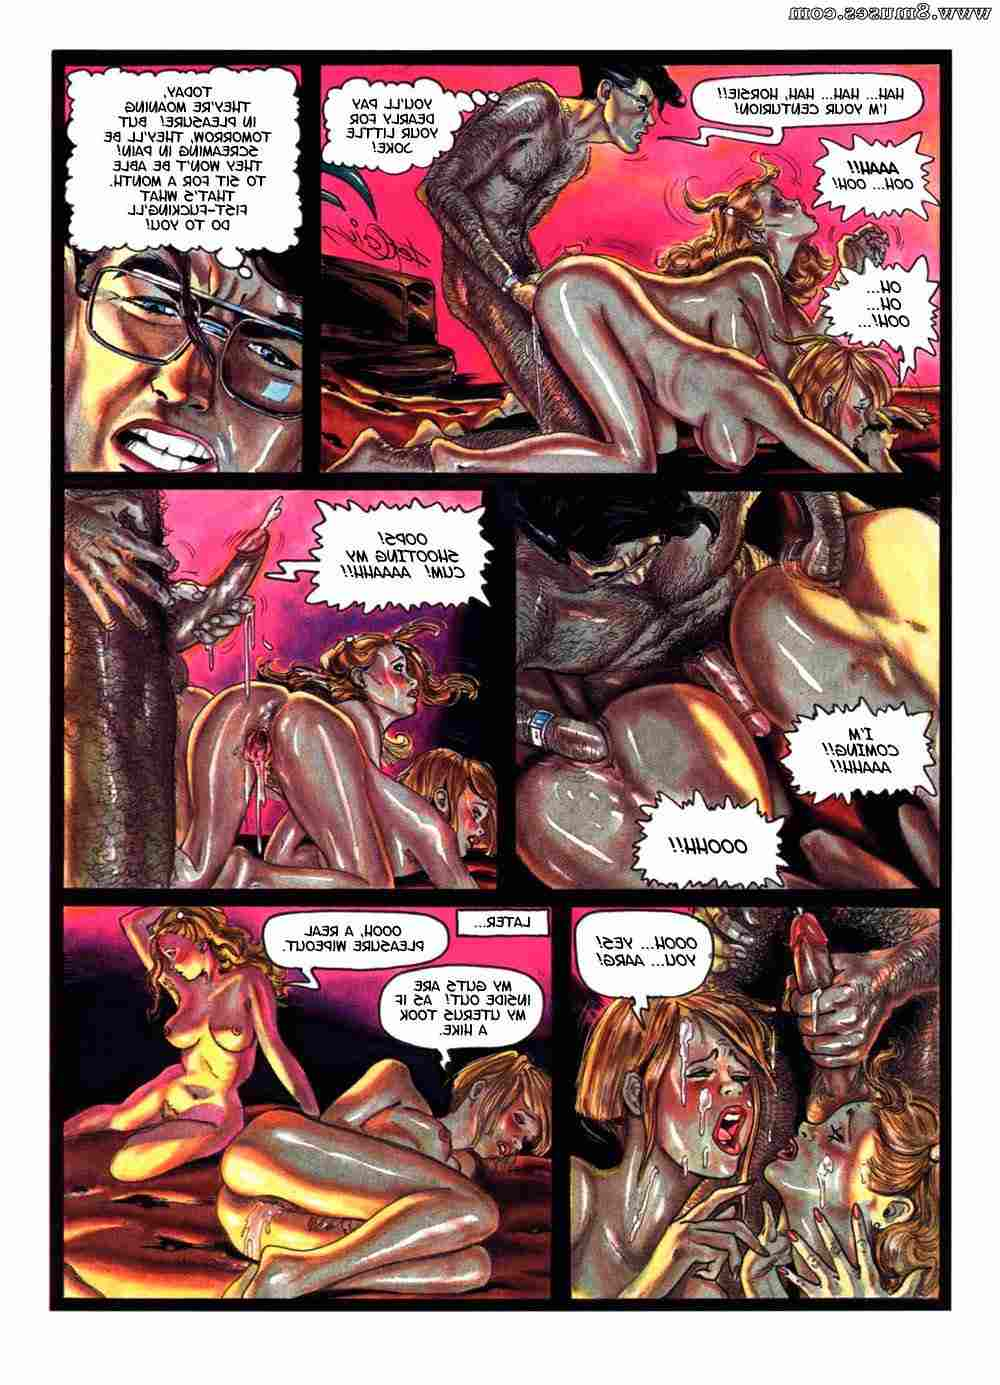 Ferocius-Comics/Forbidden-Flower Forbidden_Flower__8muses_-_Sex_and_Porn_Comics_60.jpg